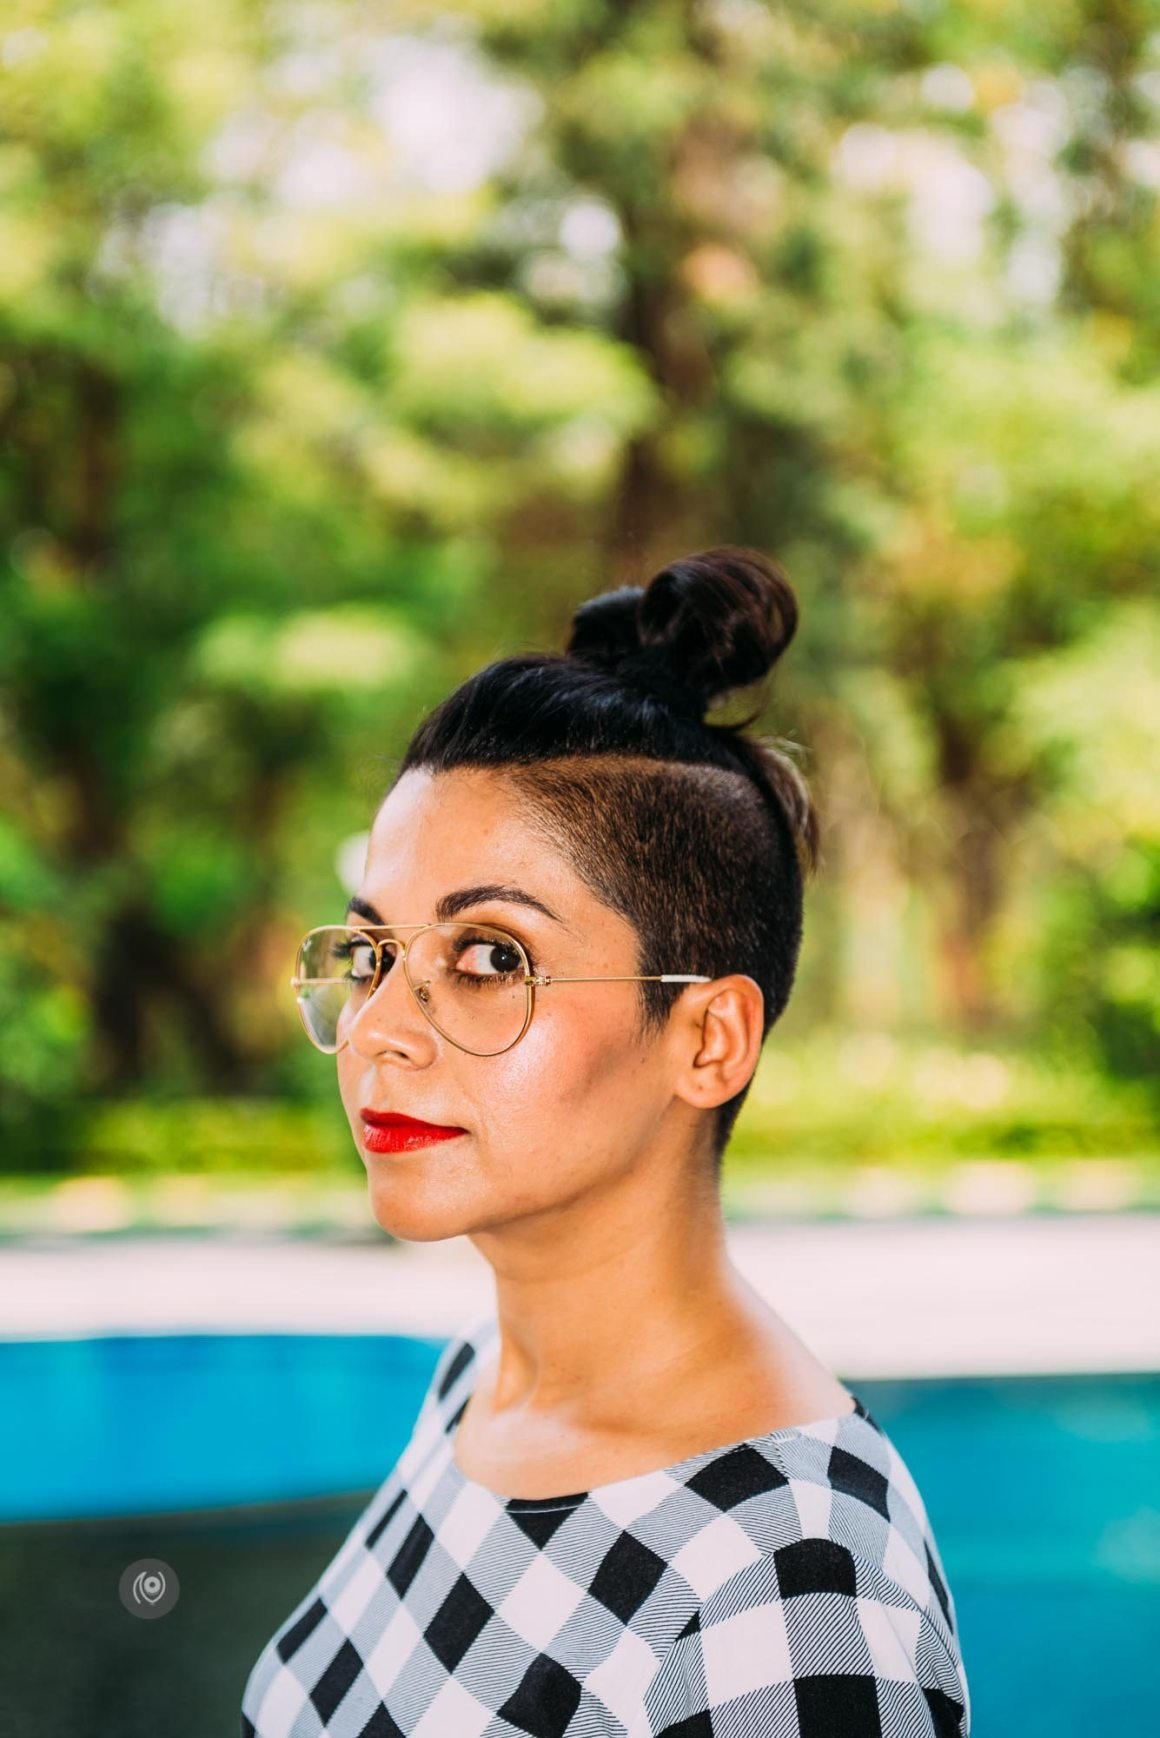 Naina.co, #REDHUxTheLalit, #CoverUp 84, Travel Photographer, Travel Blogger, Luxury Photographer, Luxury Blogger, Lifestyle Photographer, Lifestyle Blogger, Naina Redhu, #EyesForDestinations, #EyesForIndia, Destination Blogger, Destination Photographer, #CoverUp, Personal Style, Travel Style, RayBan, American Apparel, Akanksha Redhu, Clothing, Fashion, The Lalit, Chandigarh, Punjab